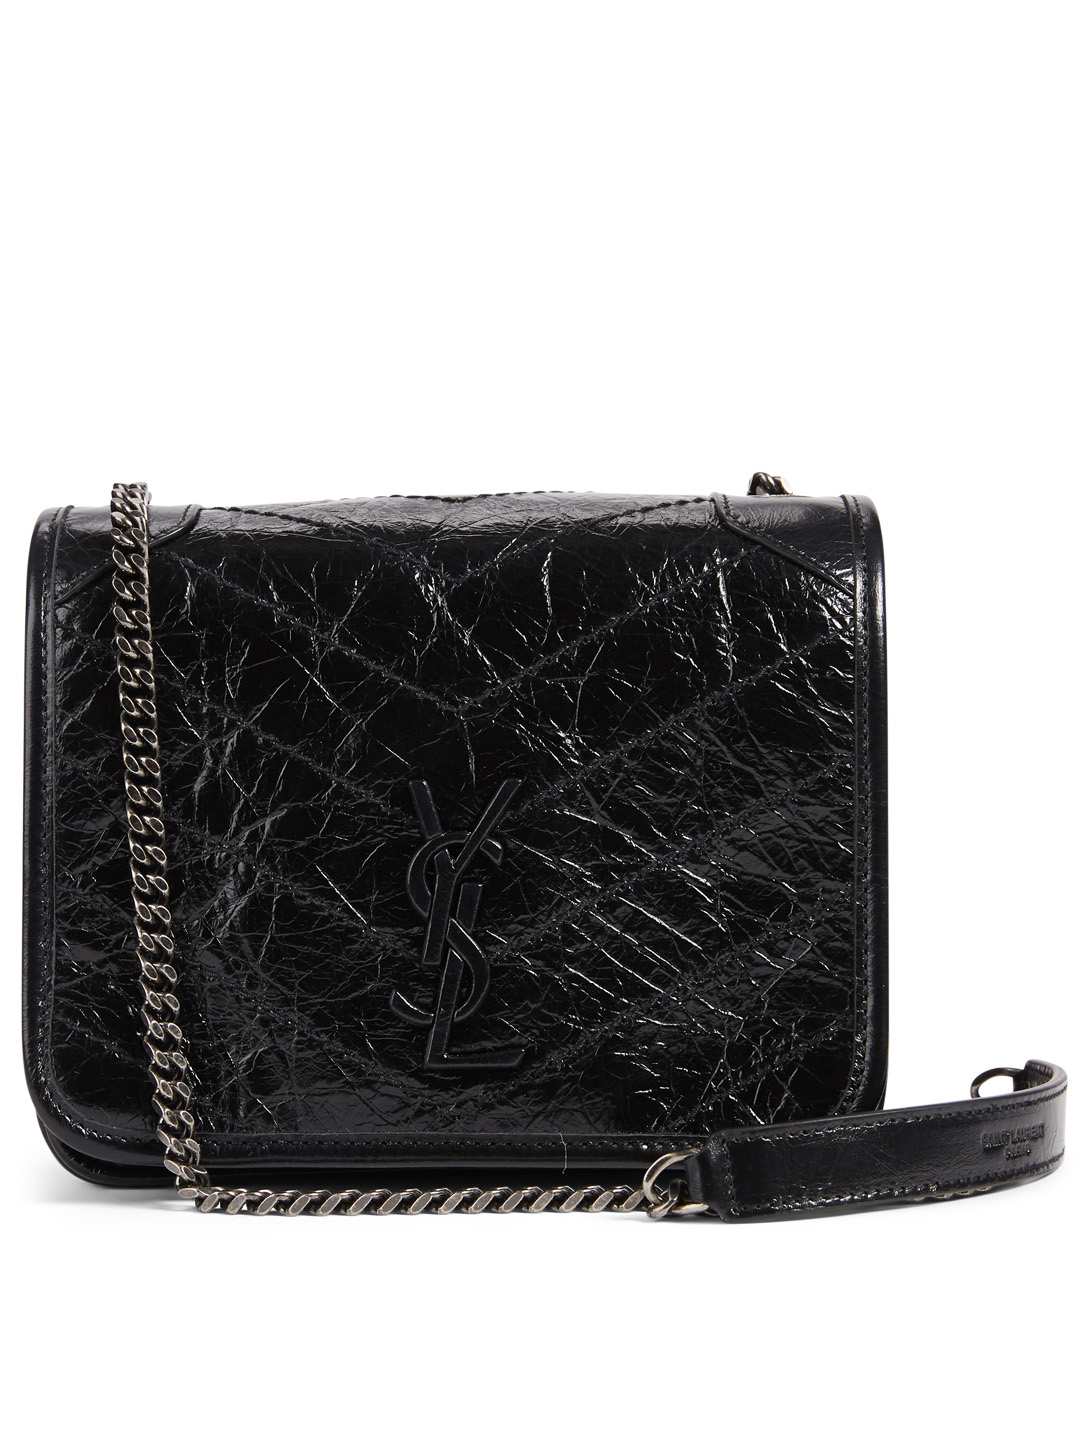 SAINT LAURENT Niki YSL Monogram Leather Chain Wallet Bag Women's Black